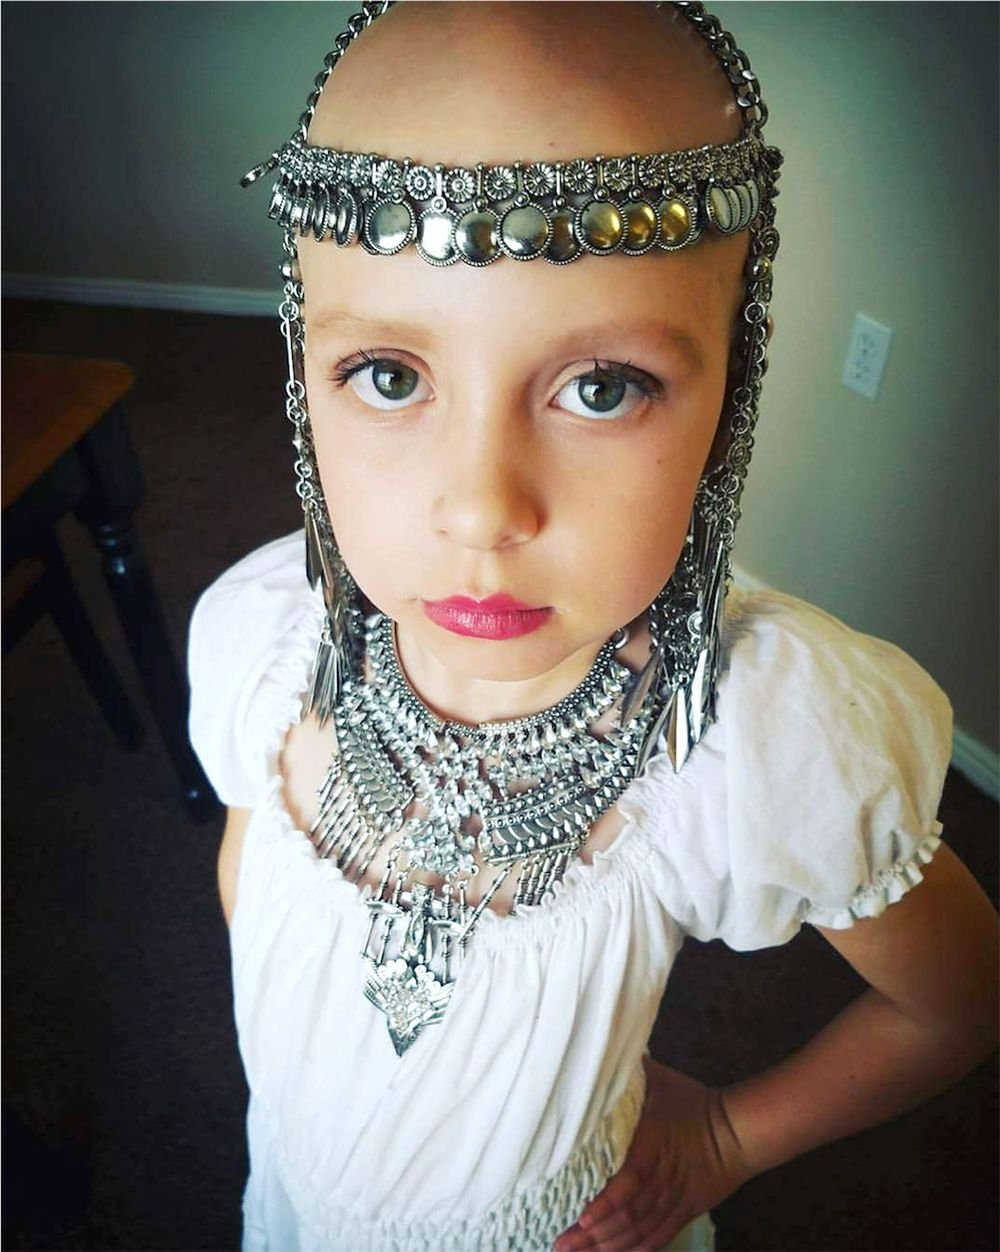 7-Year-Old Girl With Alopecia Rocks School's Crazy Hair Day